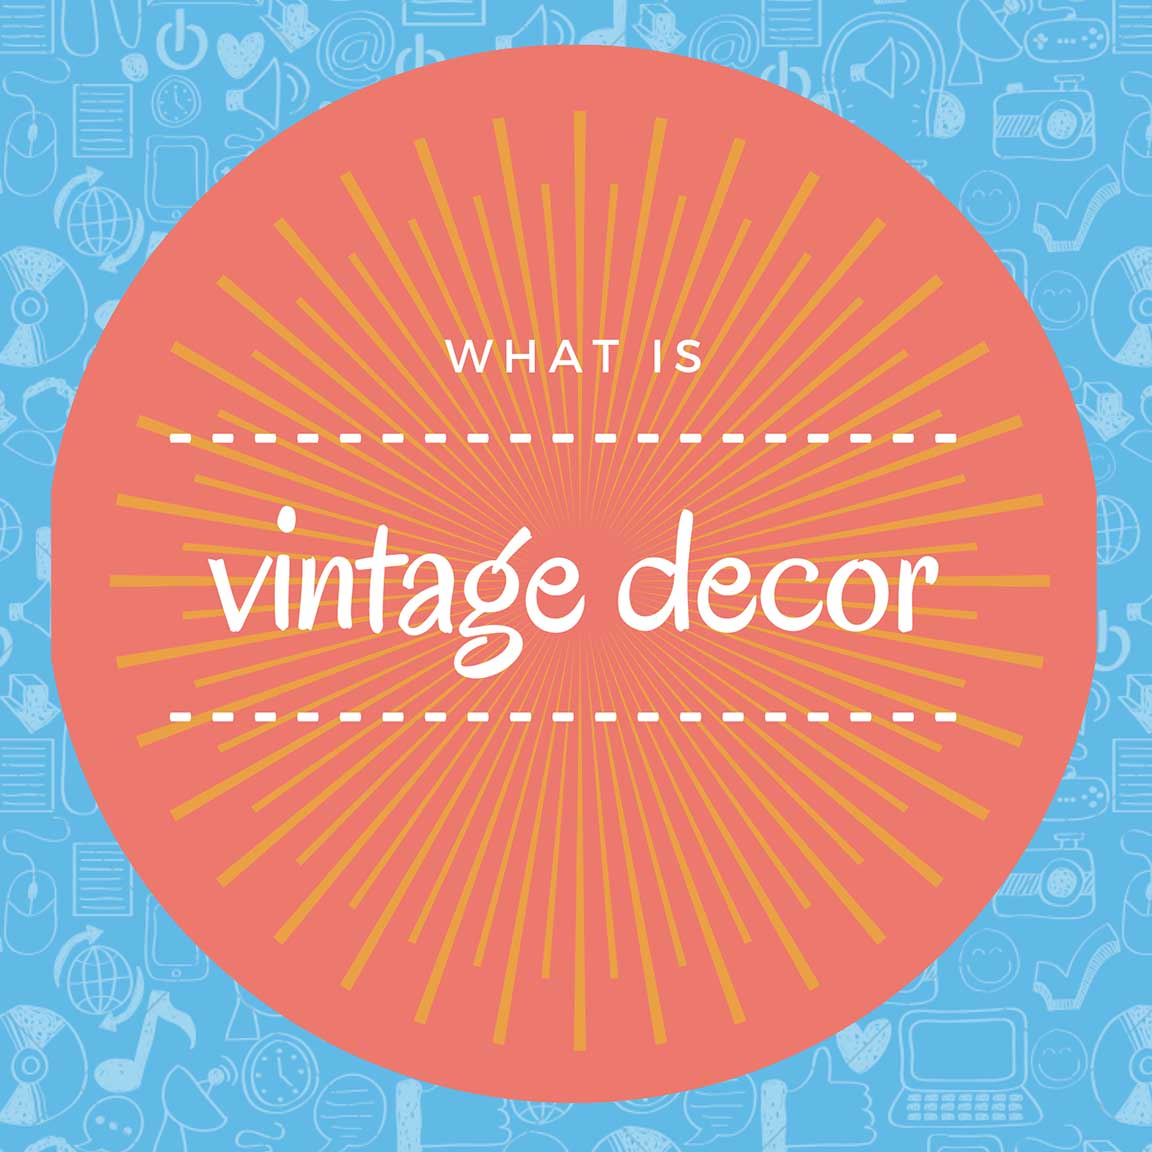 what is vintage decor